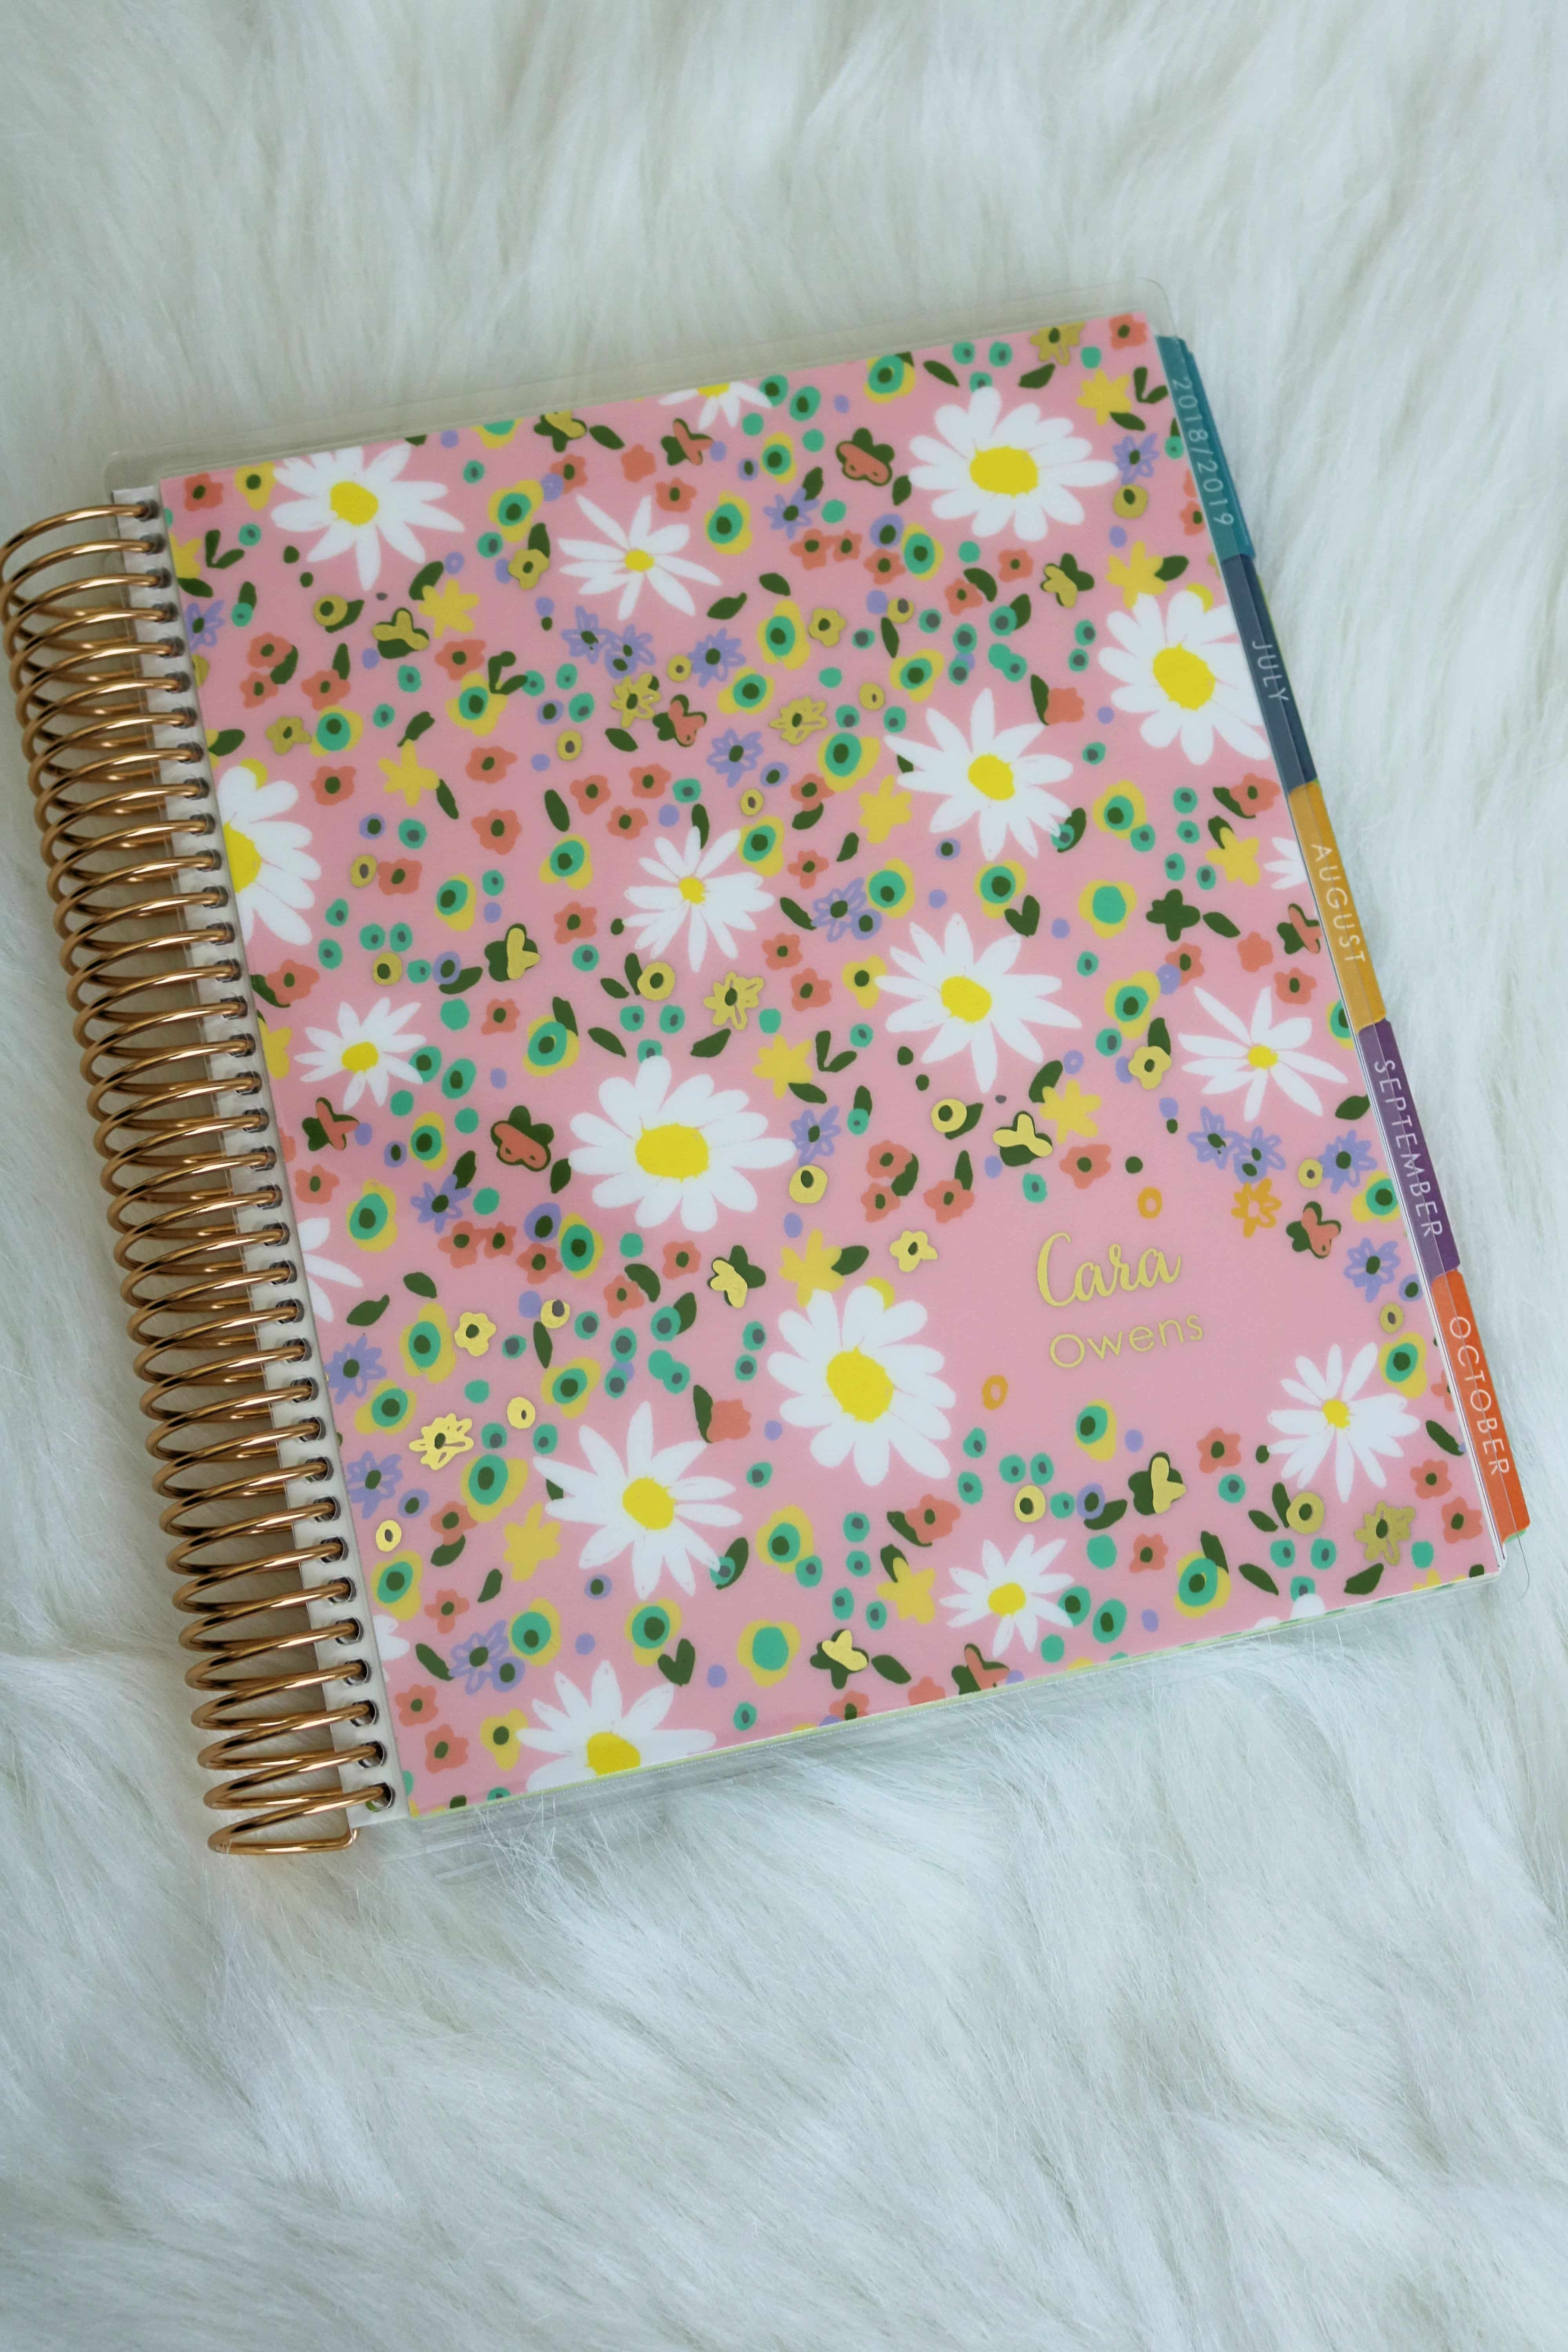 Wondering if the Erin Condren Life Planner is right for you? Check out my full review + how to customize and use it for your organizational needs. #erincondren #planner